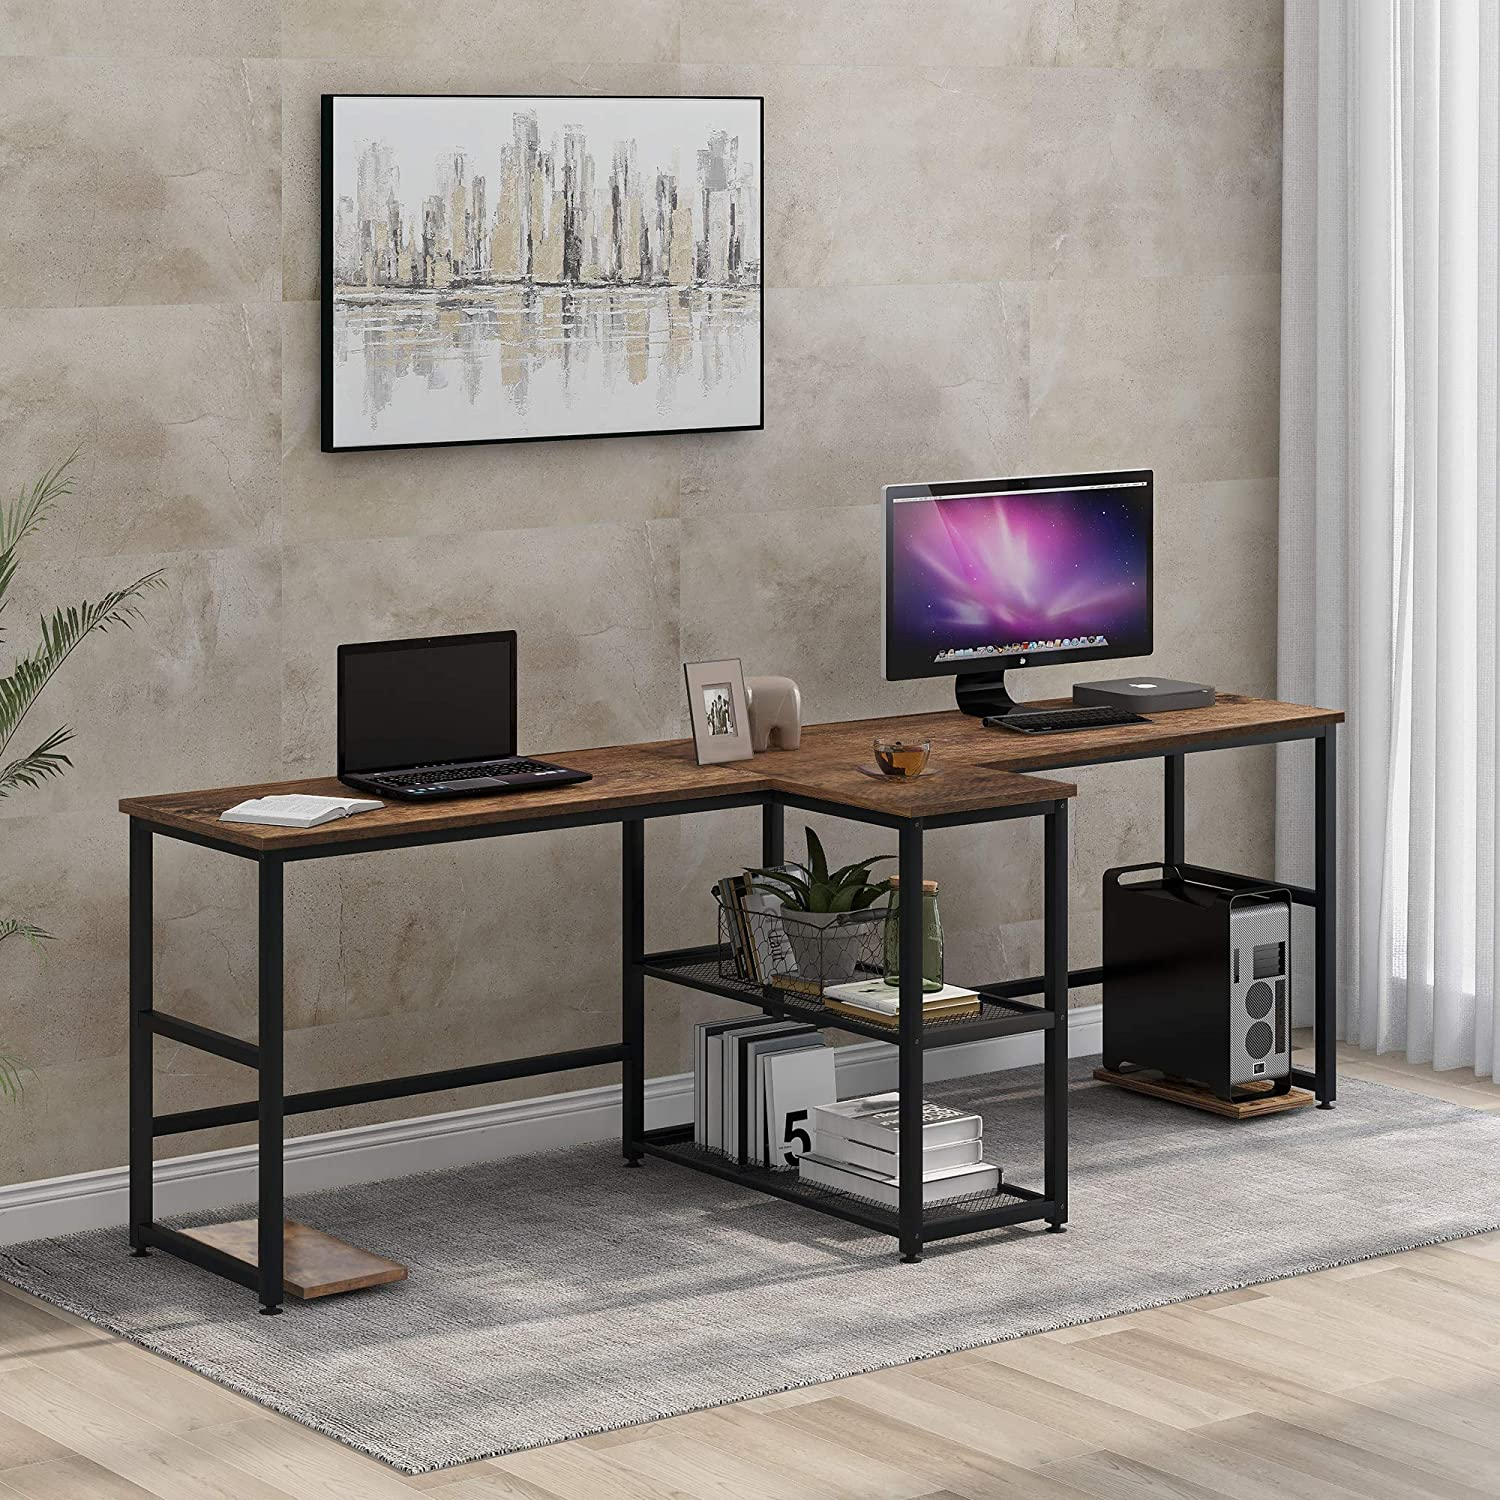 Merax Two Person, Double Computer Storage Shelves,Extra Long 2 People Workstation Office Desk, 94.4